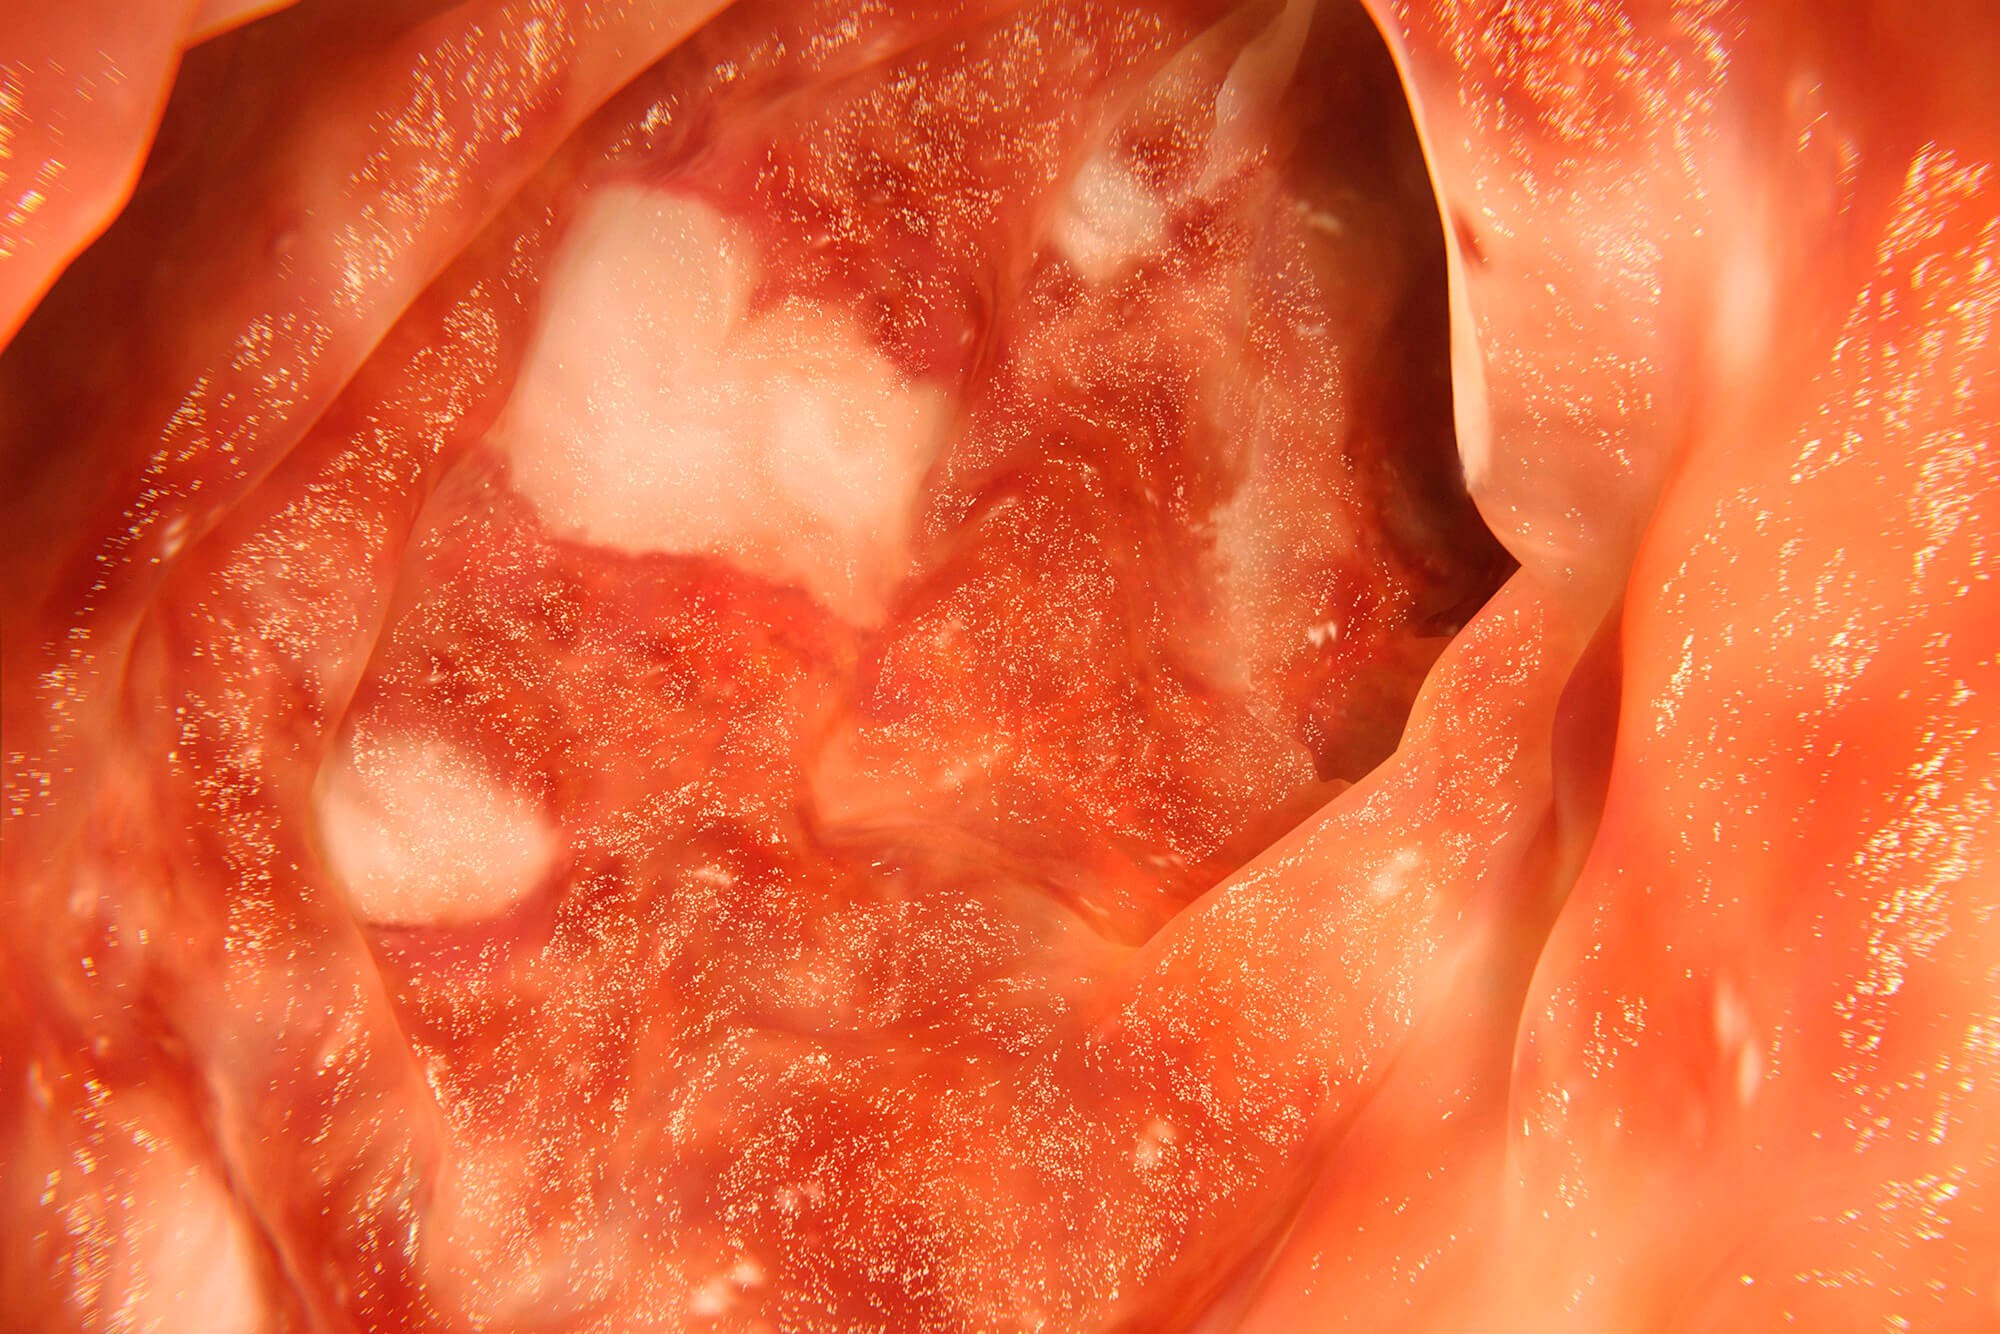 Fecal Transplant in Managing Immune Checkpoint Inhibitor-Associated Colitis